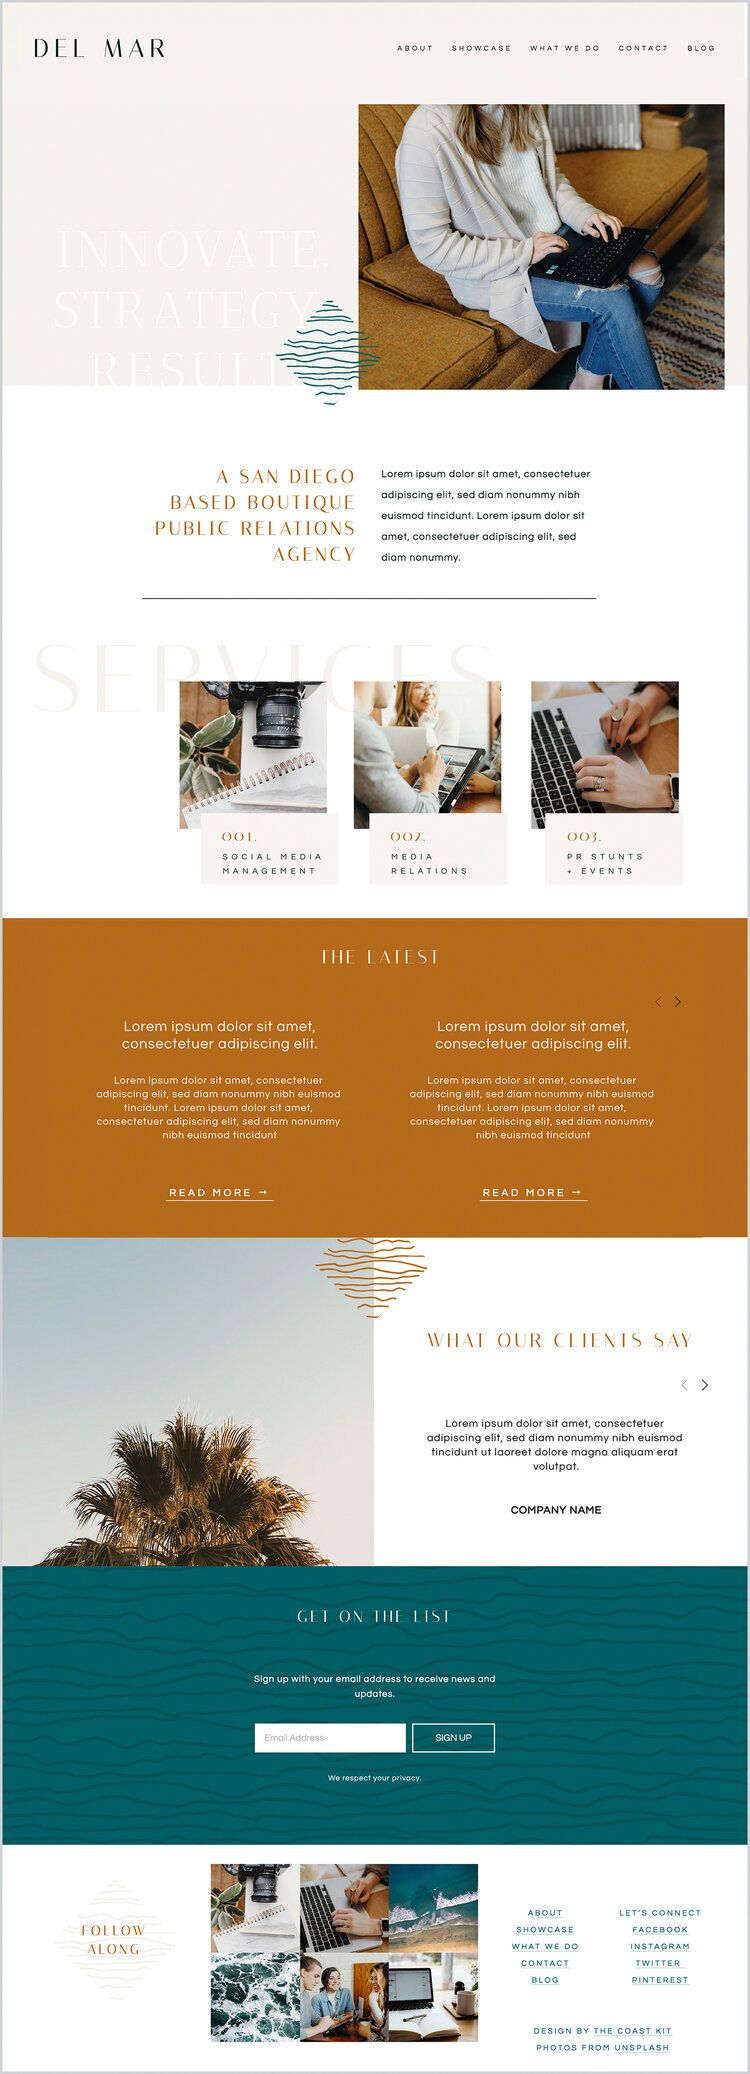 Pin on Design Squarespace Templates